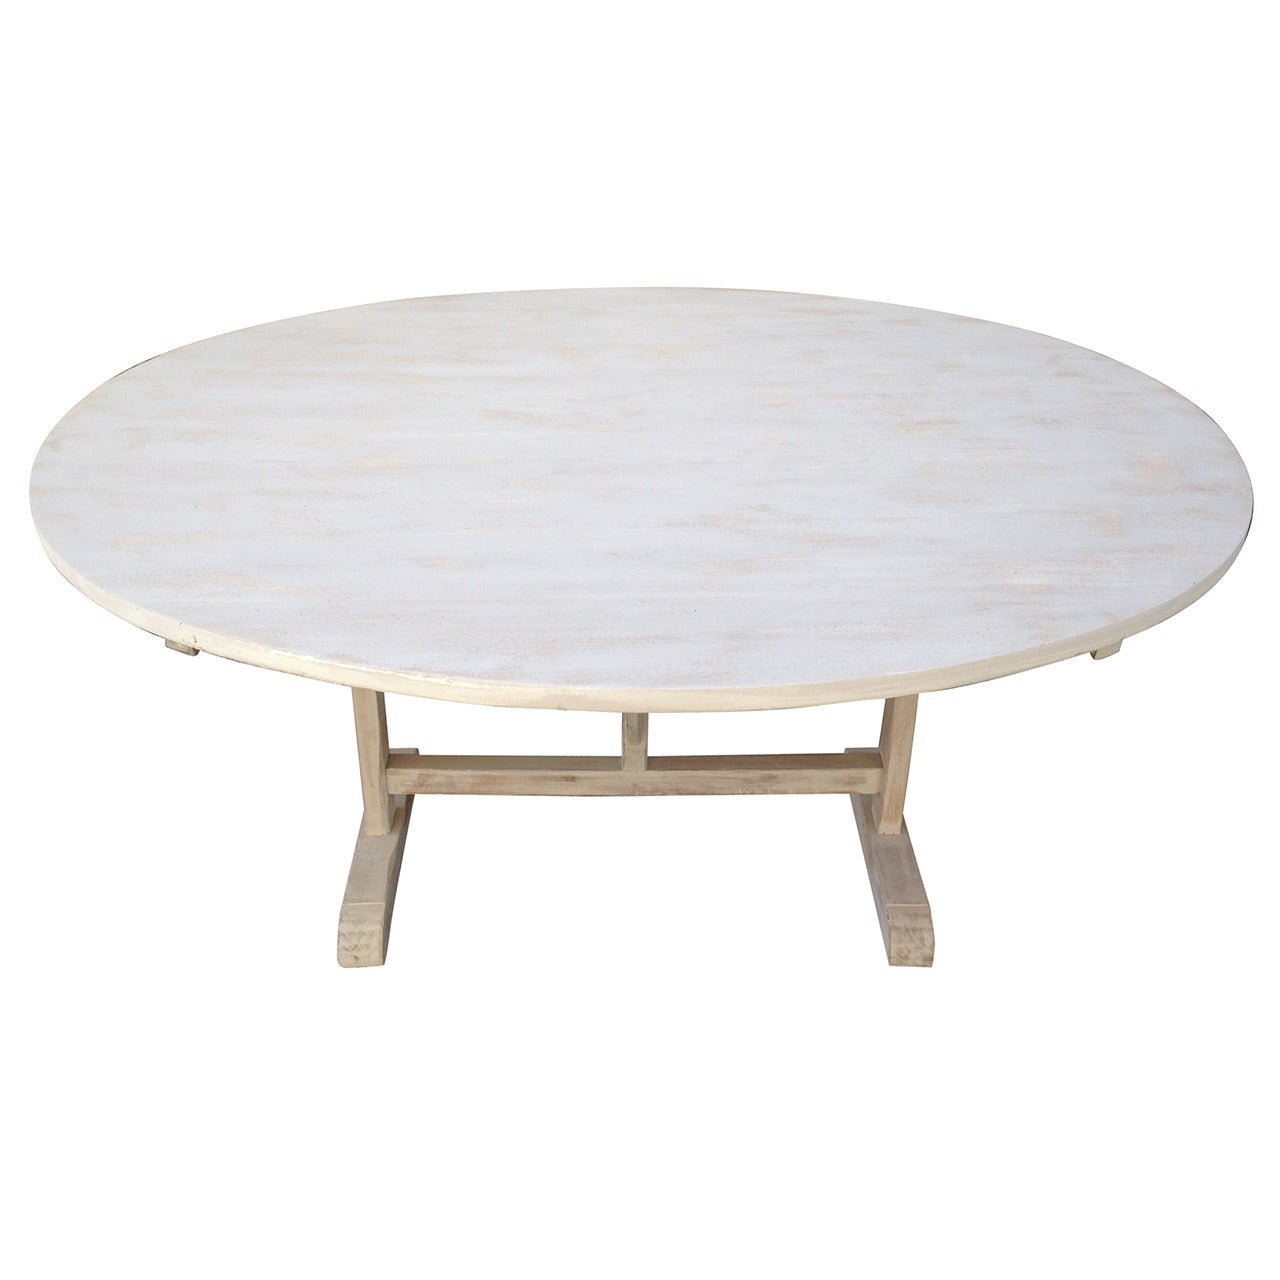 Large 19th Century French Poplar and Oak Oval Wine-Tasting Table